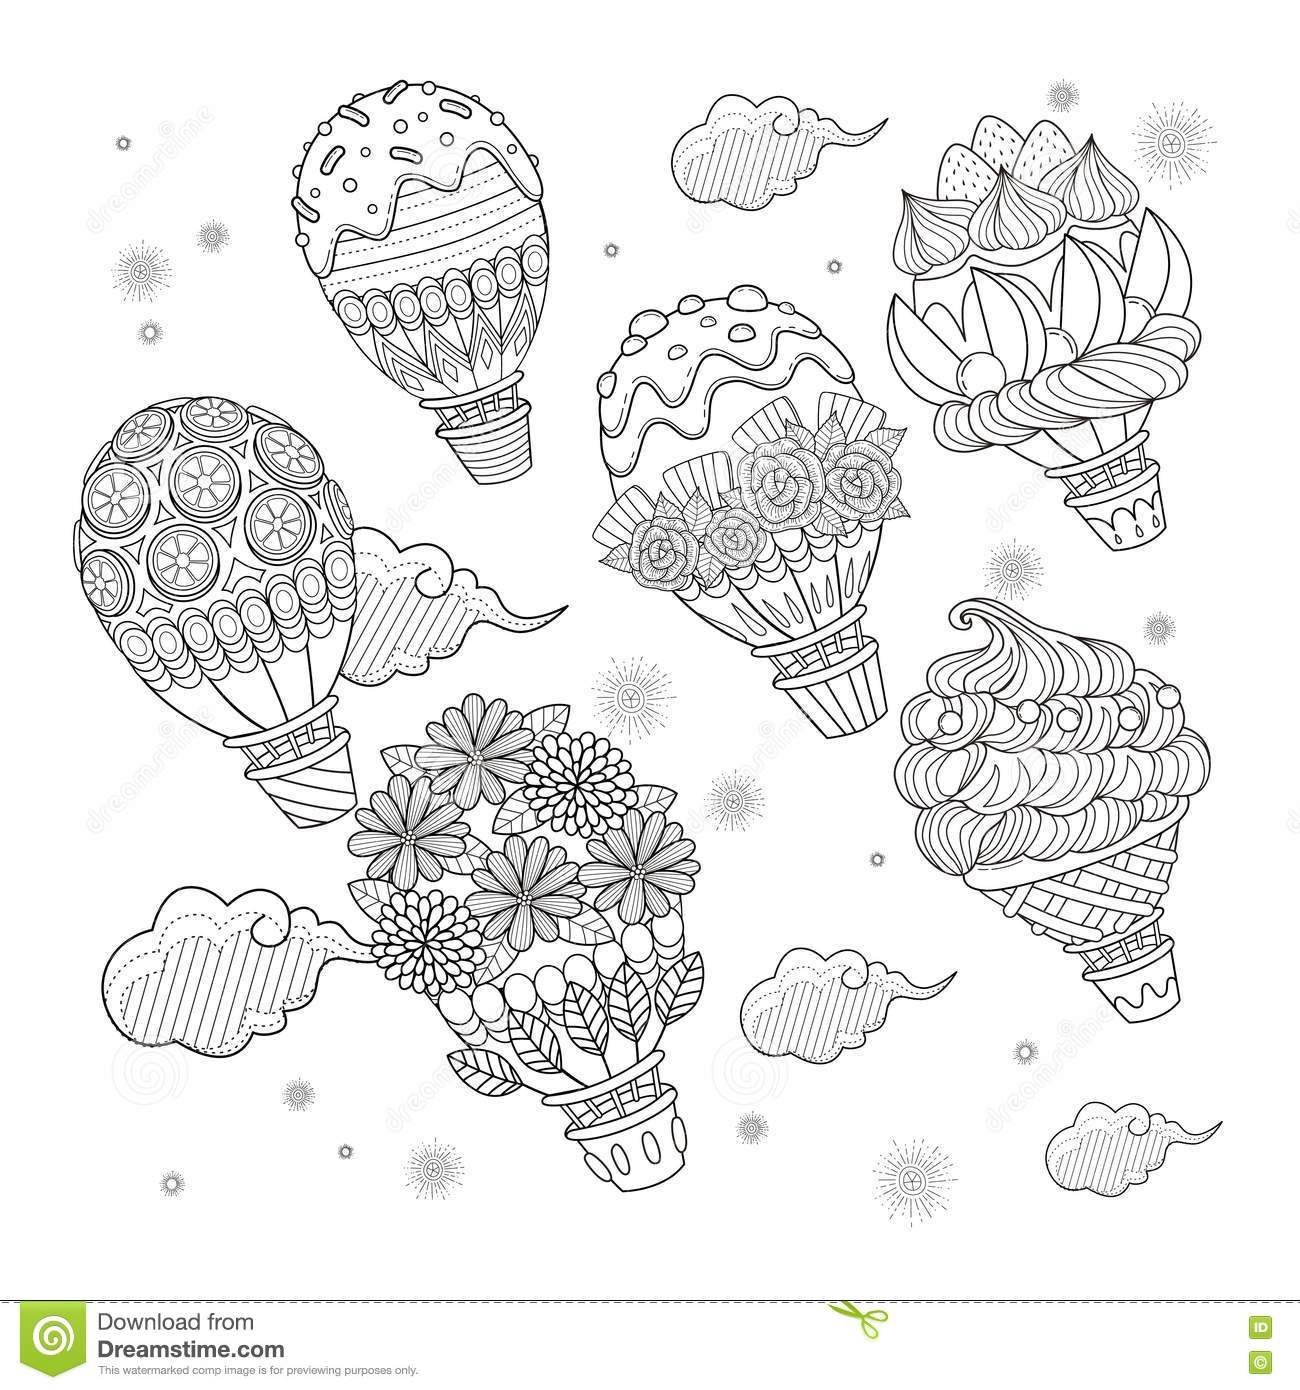 Hot air balloon #46 (Transportation) – Printable coloring pages | 1390x1300